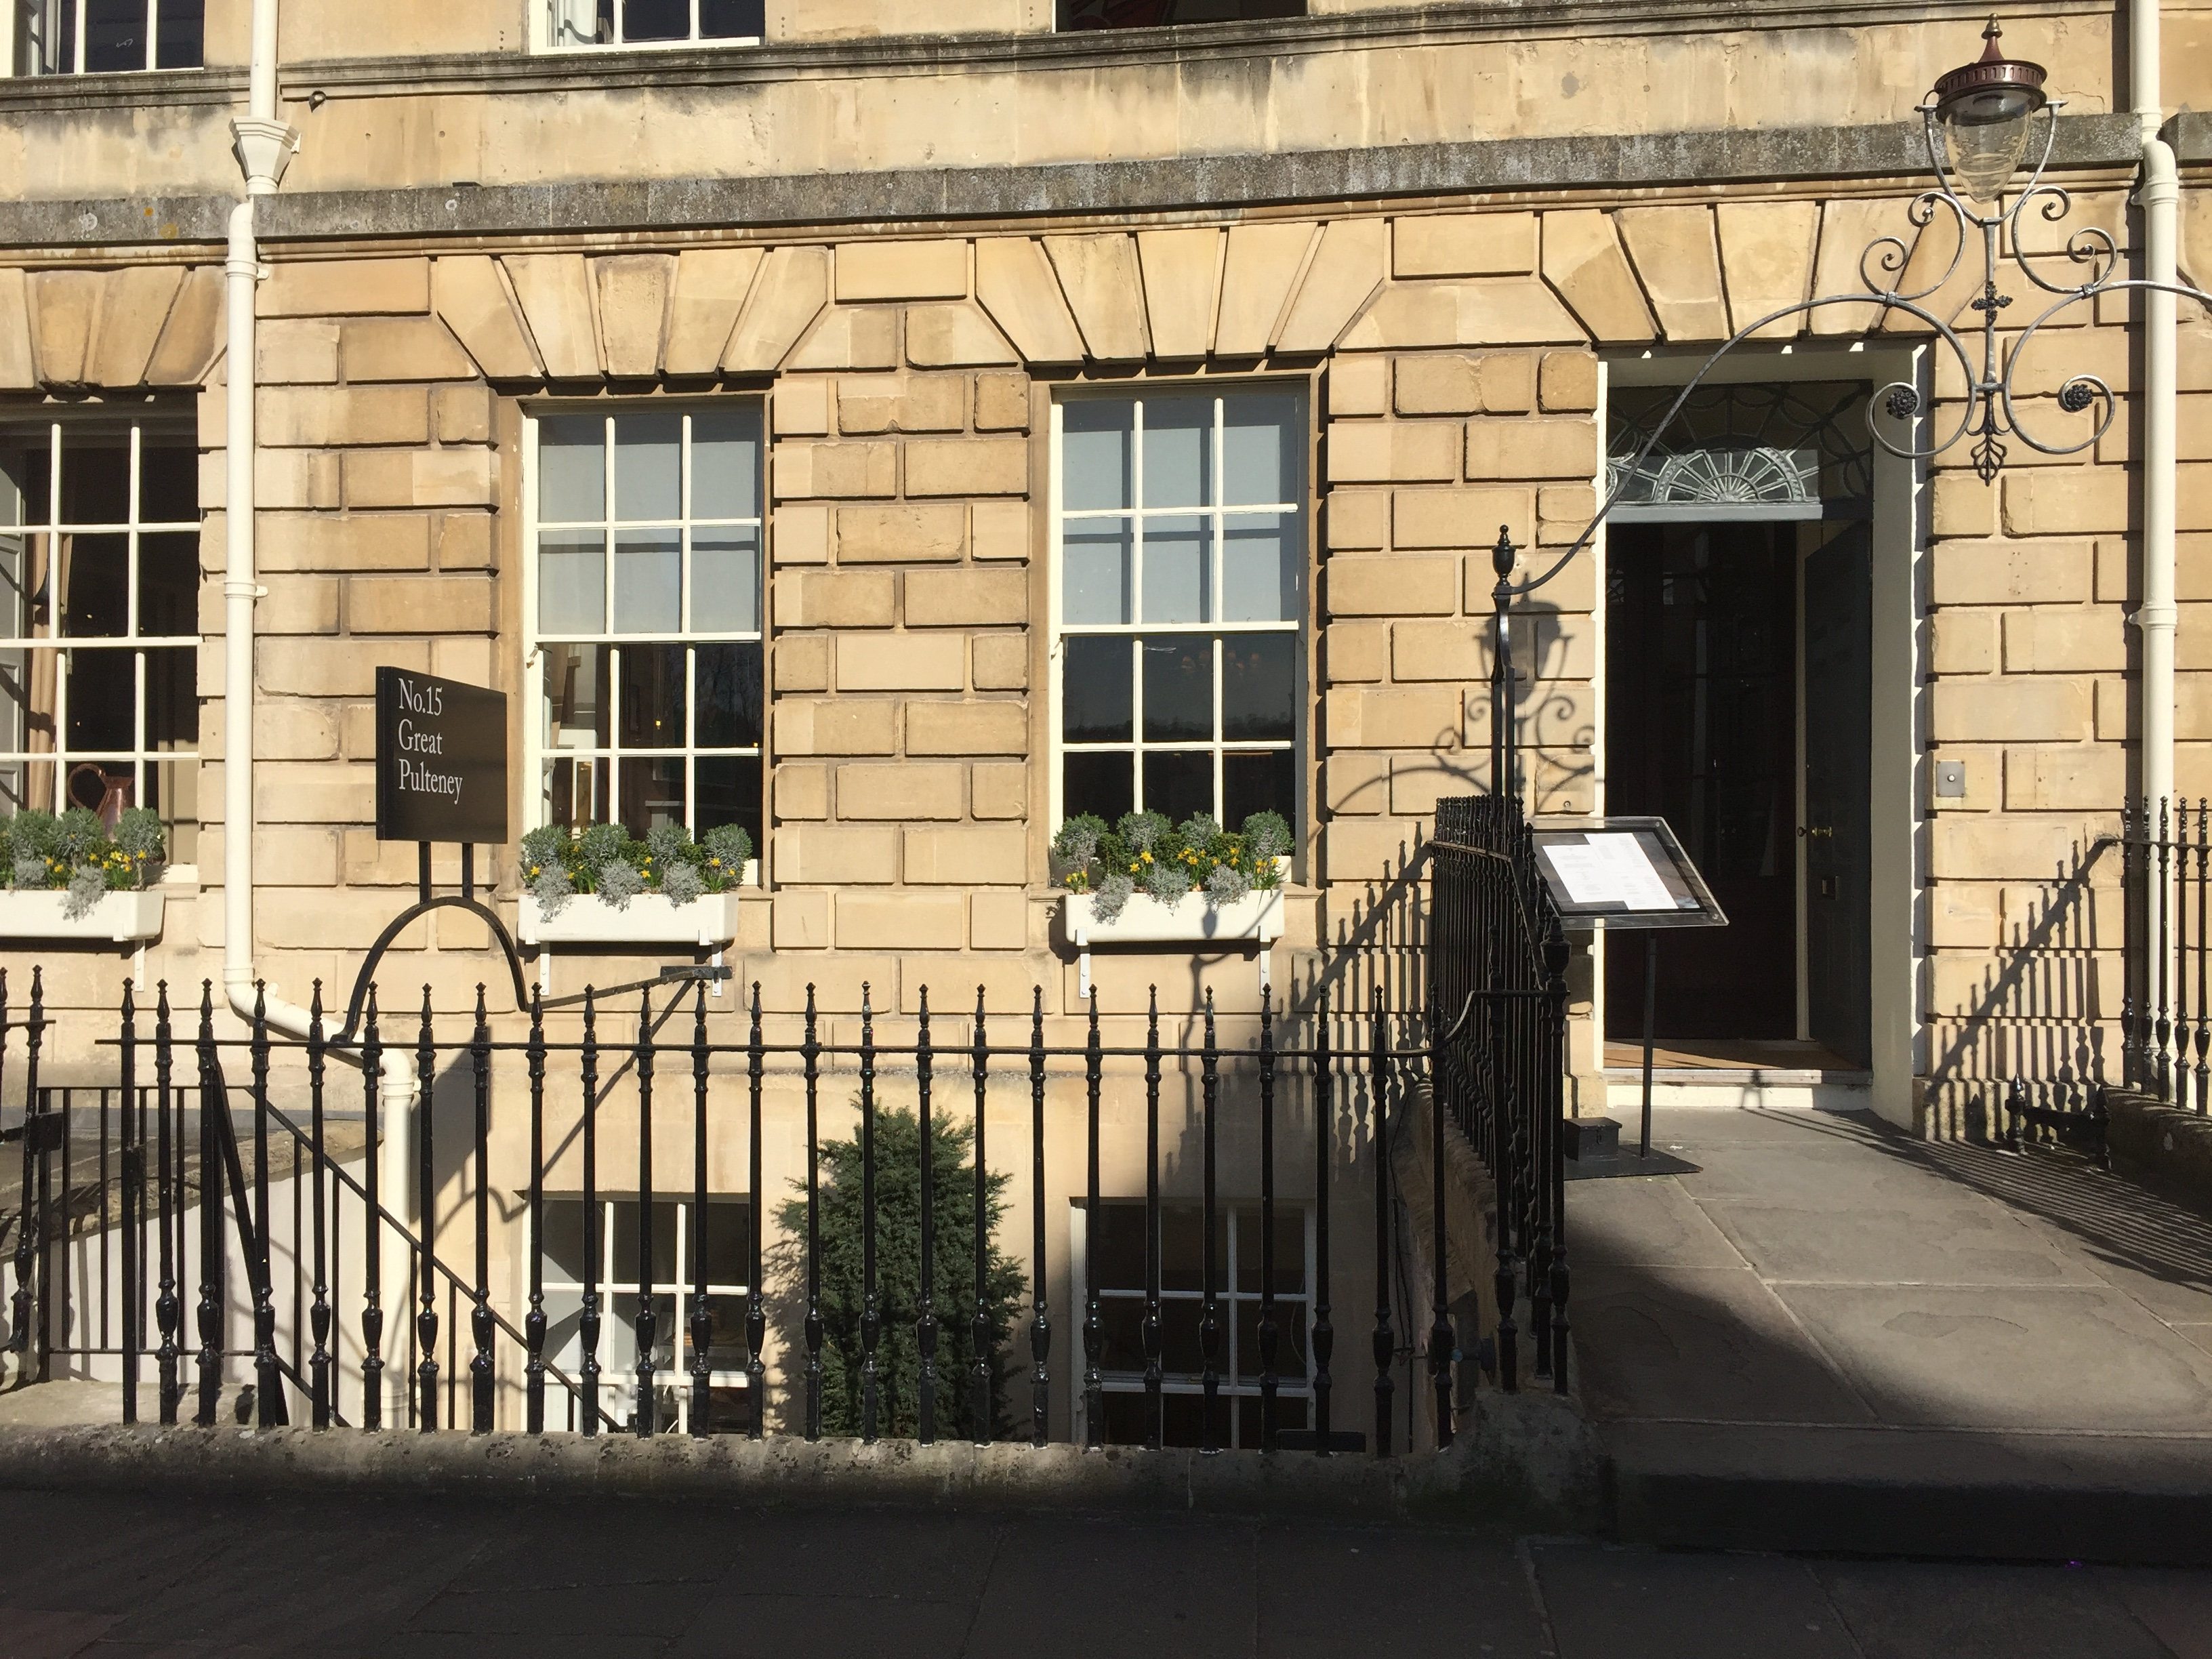 No 15 Great Pulteney Hotel in Bath, UK